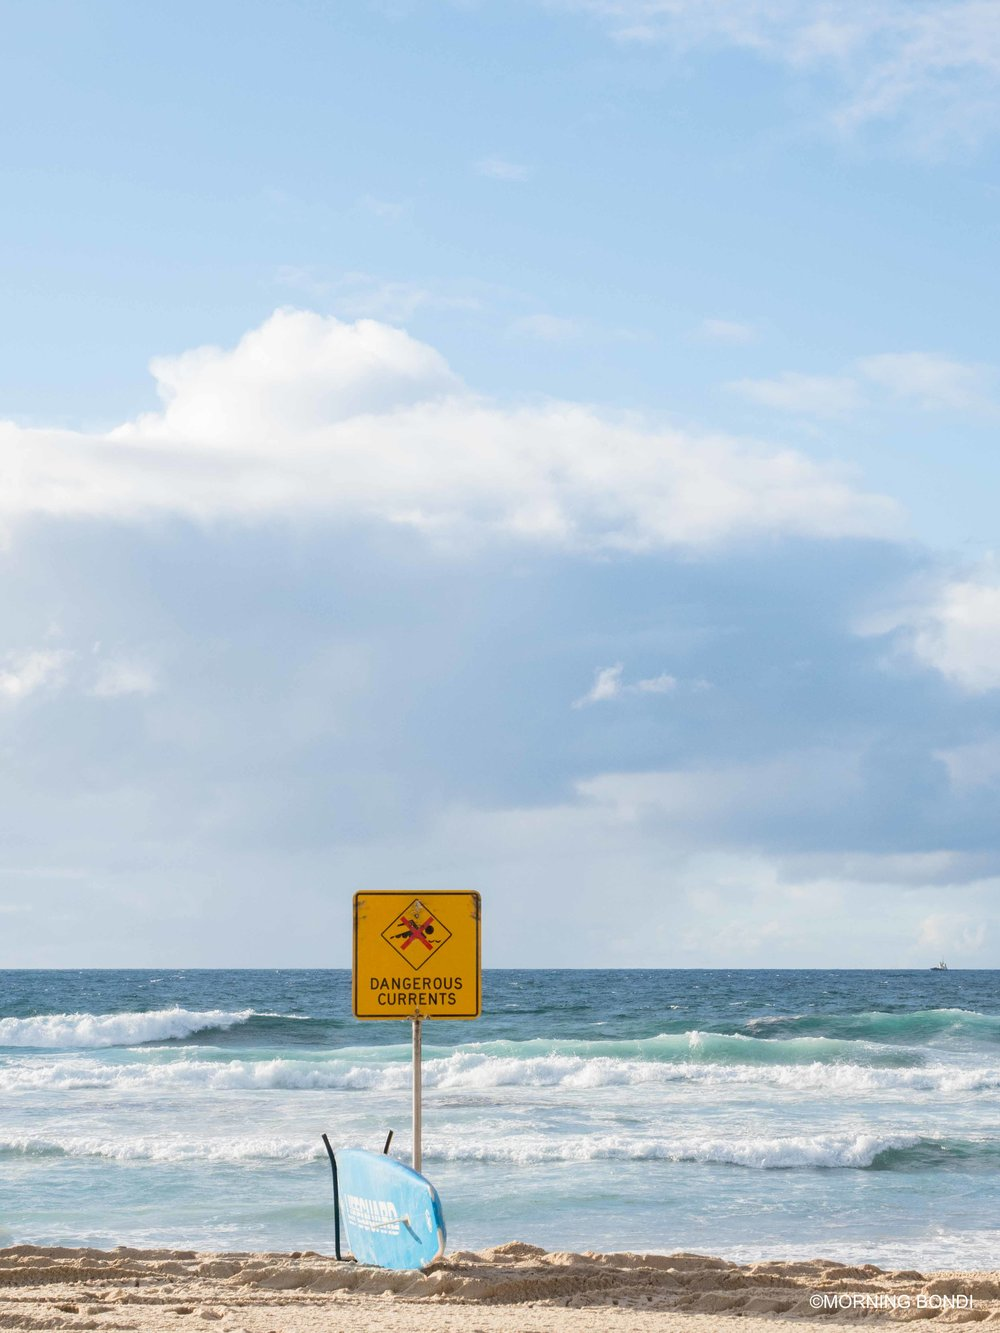 Be aware of these signs and boards, they are not just pretty!